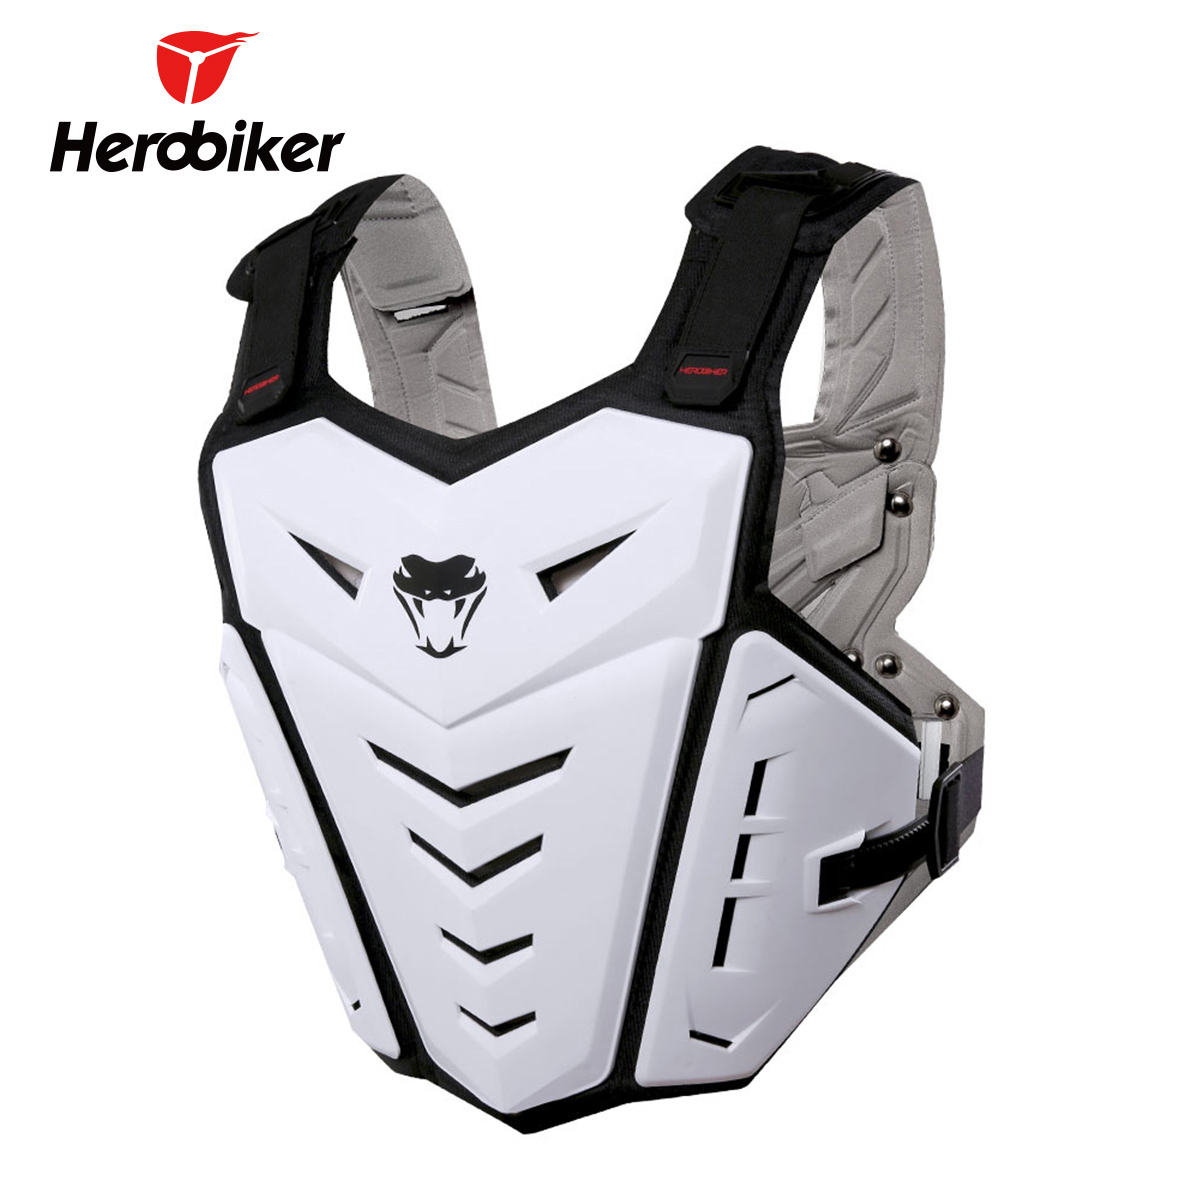 HEROBIKER Motorcycle Jacket Body Armor Motorcycle Motocross Moto Vest Back Chest Protector Off-Road Dirt Bike Protective Gear brand new motorcycle armor protector motocross off road chest body armour protection jacket vest clothing protective gear p14